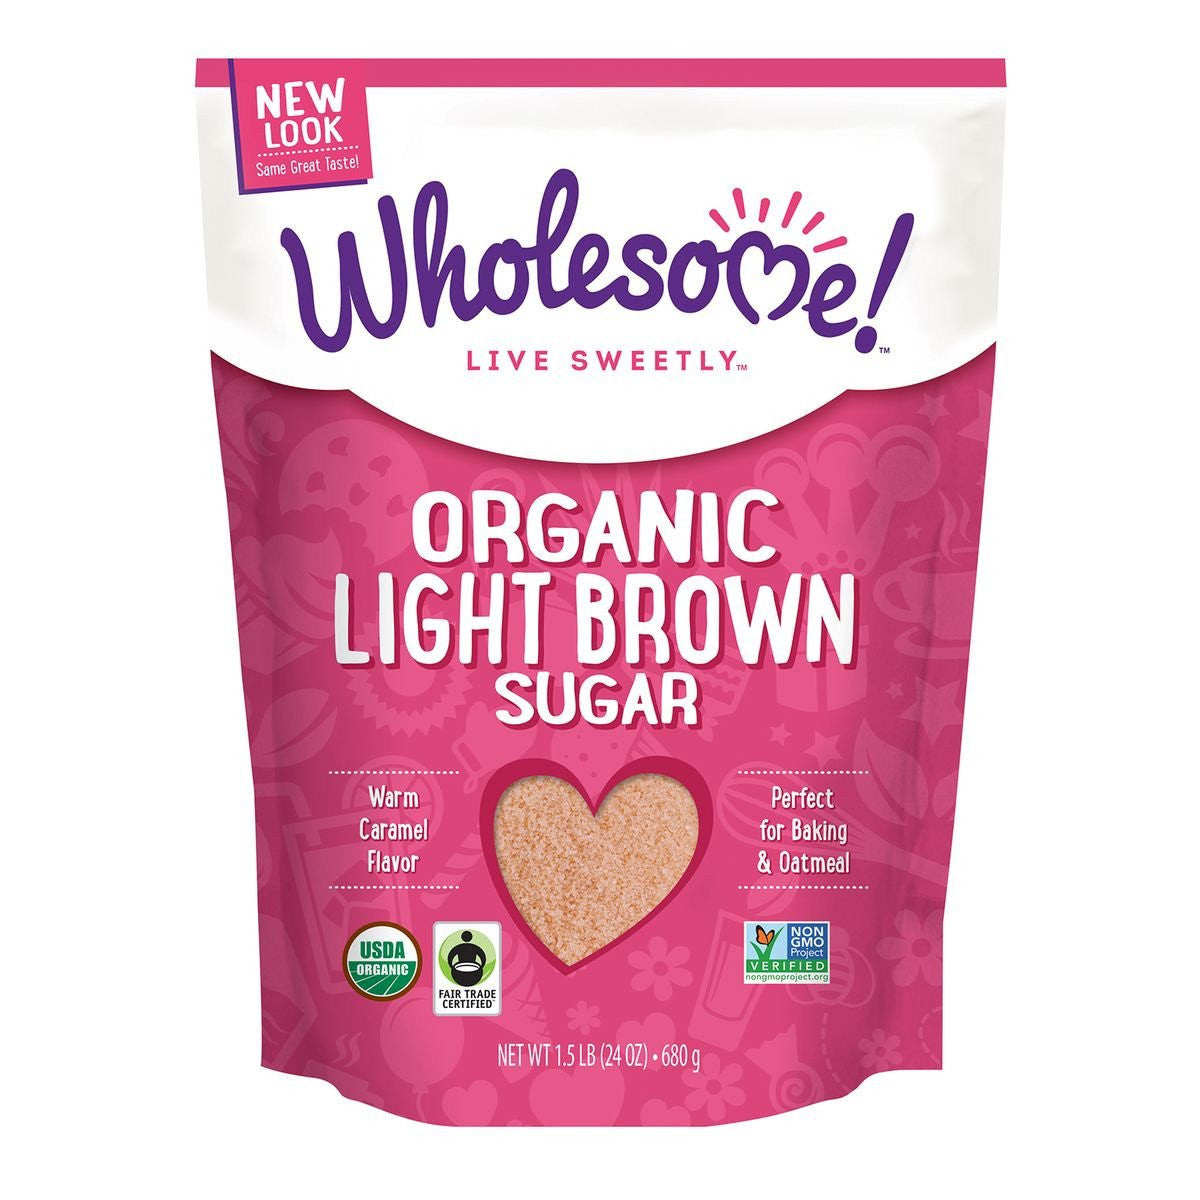 Wholesome Sweeteners Light Brown Organic Sugar, 1.5 Lb (Pack of 6)